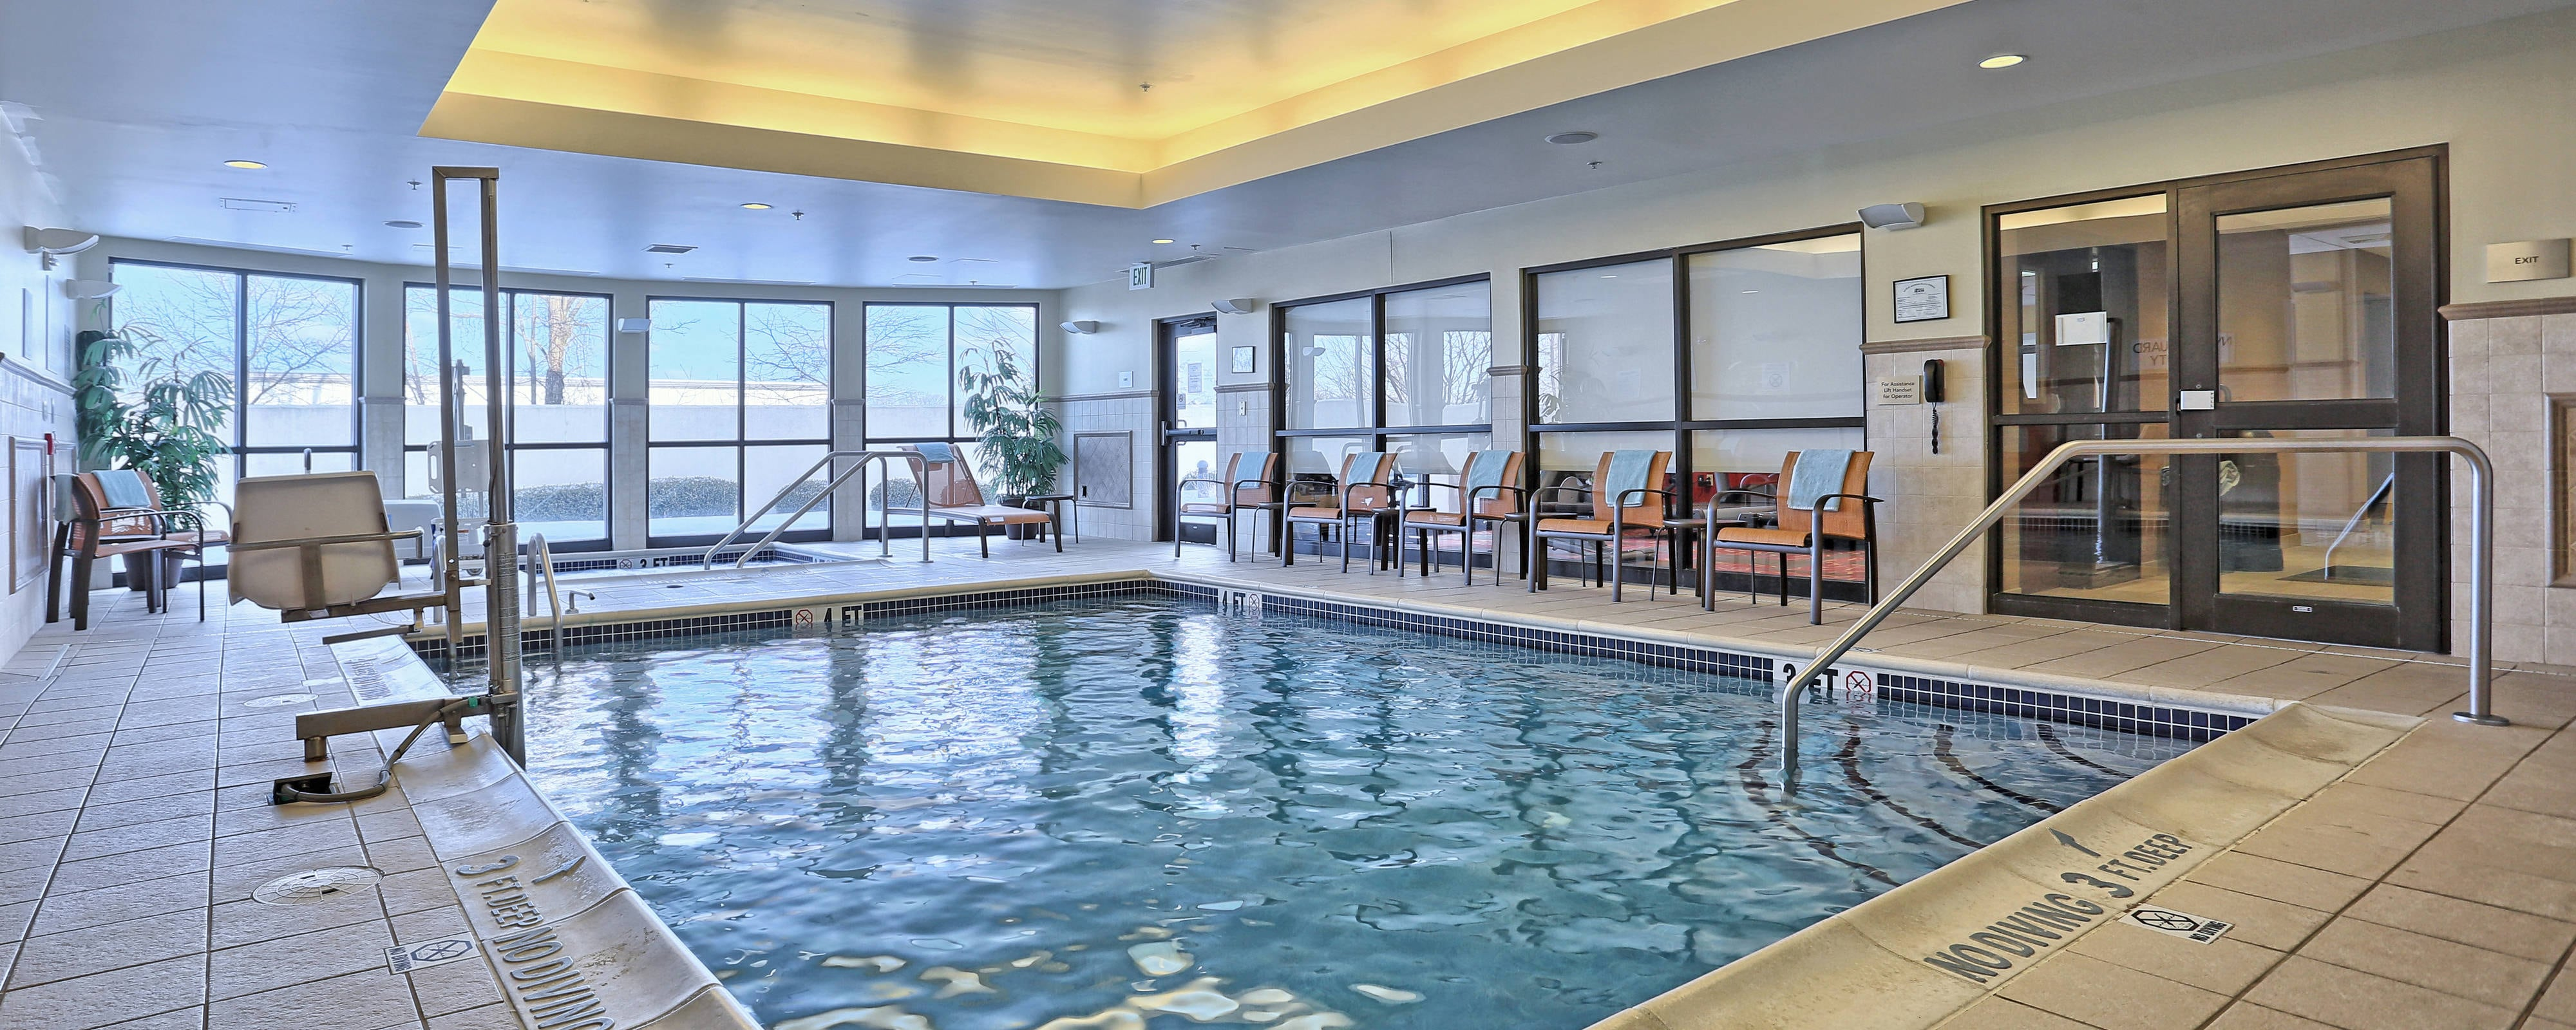 Mechanicsburg hotel indoor pool